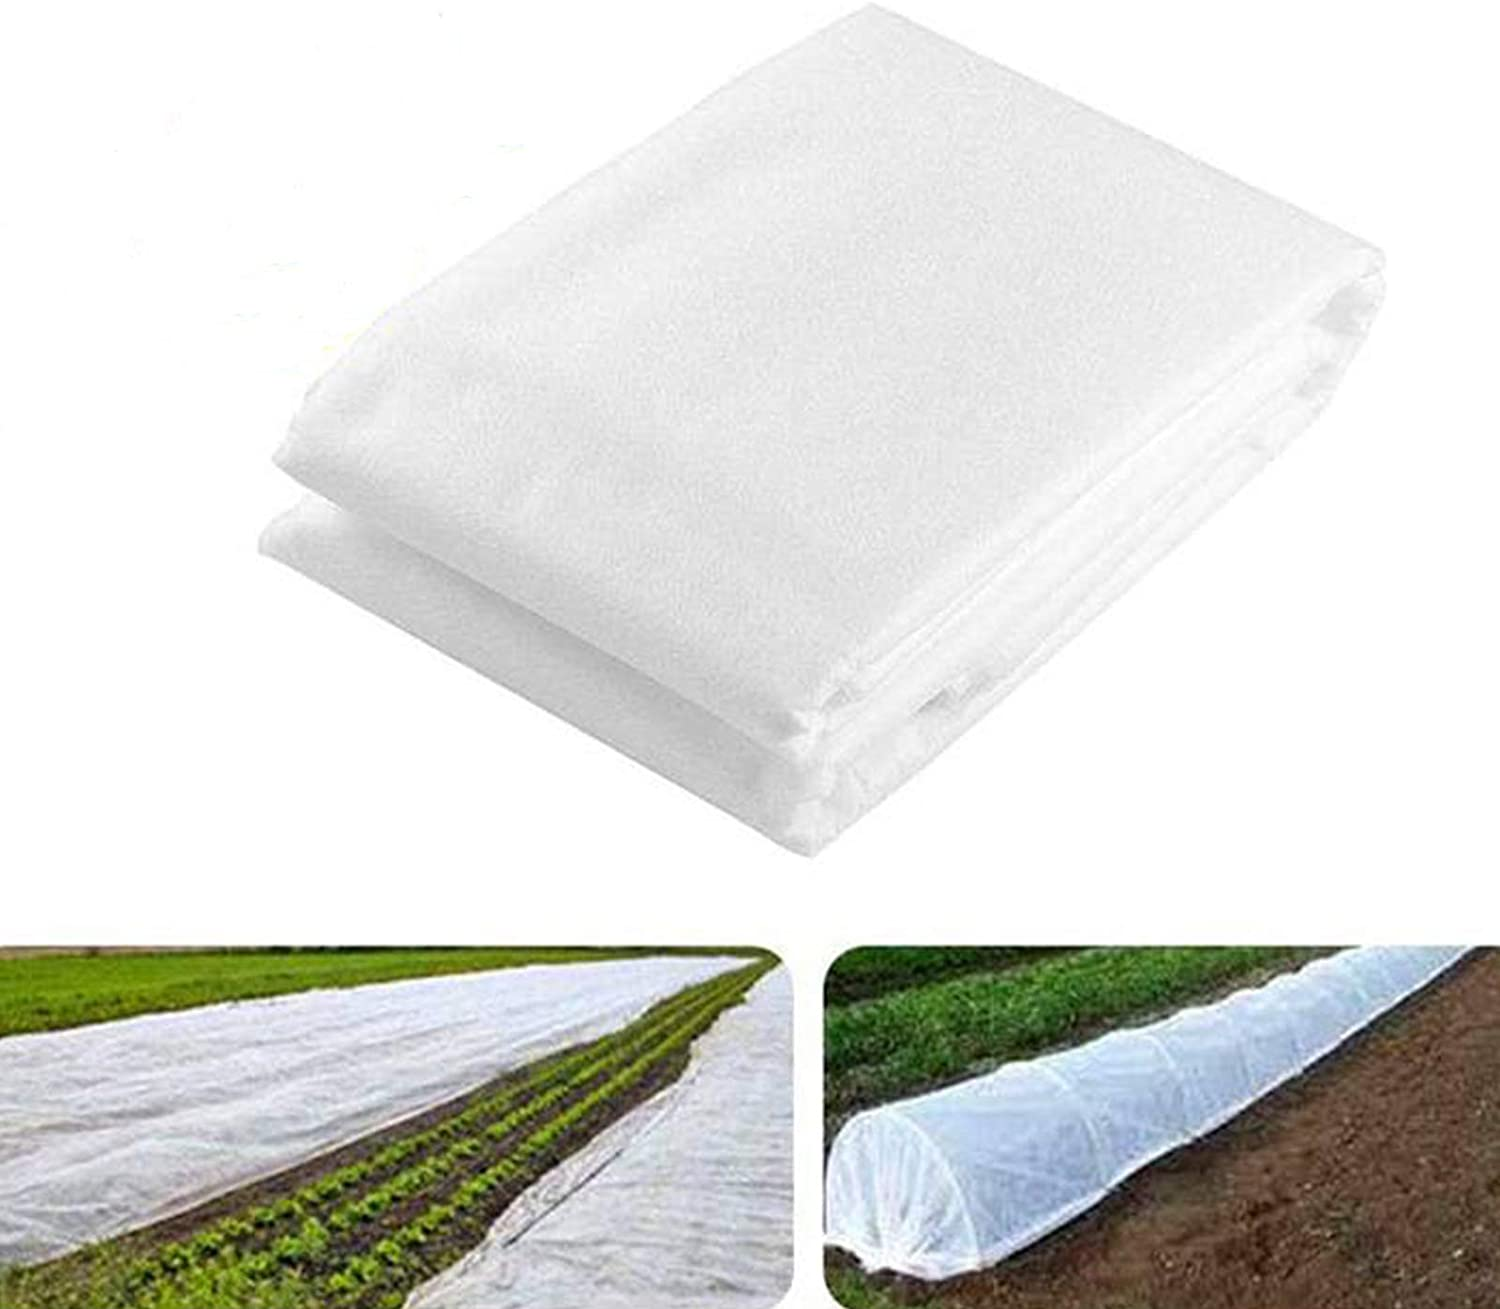 loofeng Plant Cover, Frost Protection for Plants, Garden Bed Cover, Row Covers for Vegetables, Winter Outdoor Plant Covers Freeze Protection